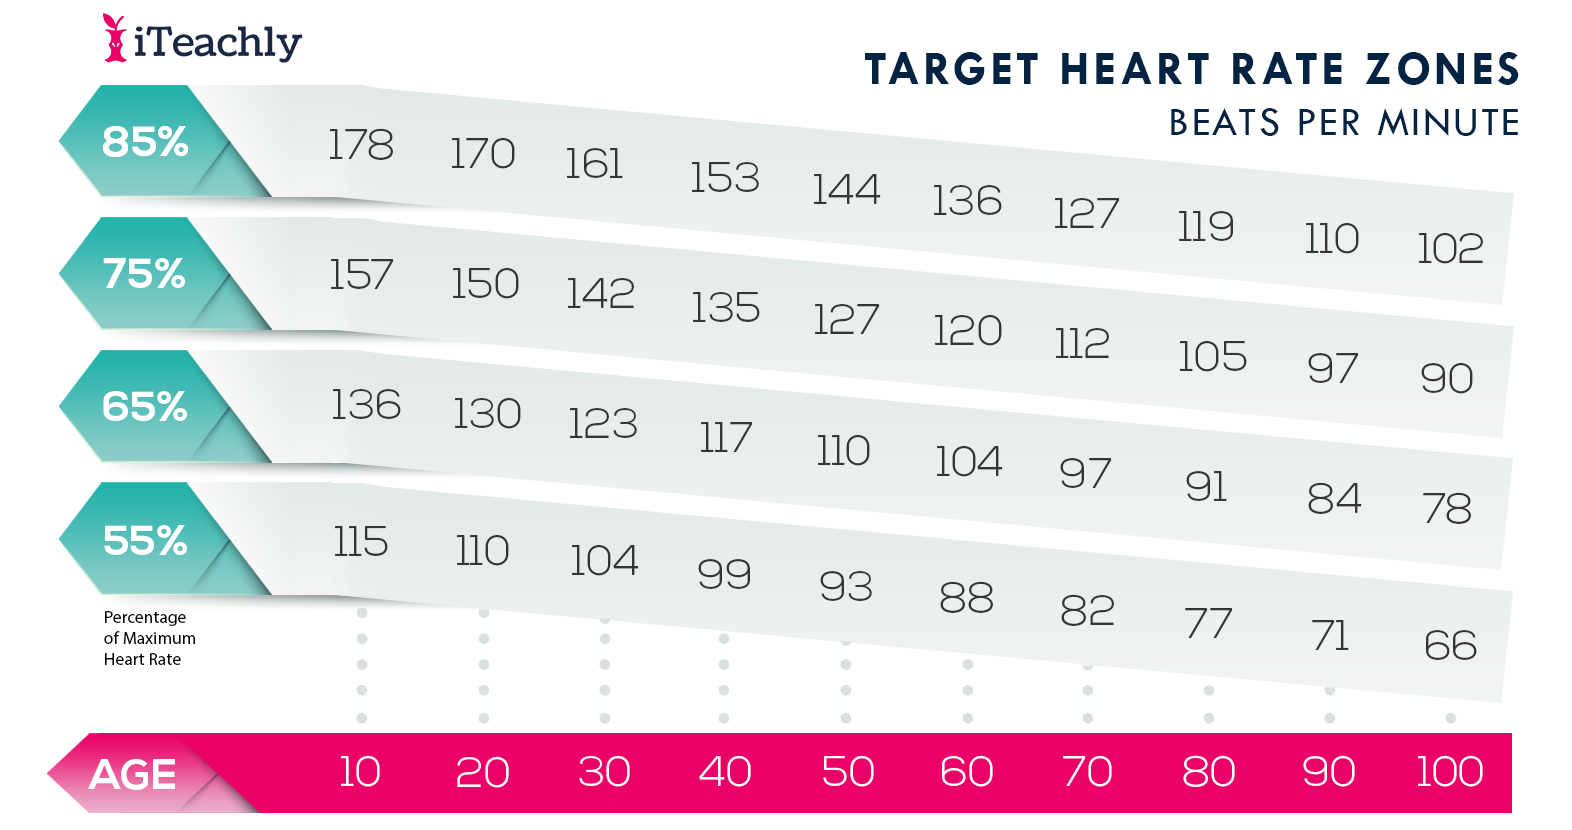 Target Heart Rate Zones Beats Per Minute, biology valentines day card, valentine's day biology, valentine's day biology jokes, valentine's day biology activity, valentine's day biology worksheet